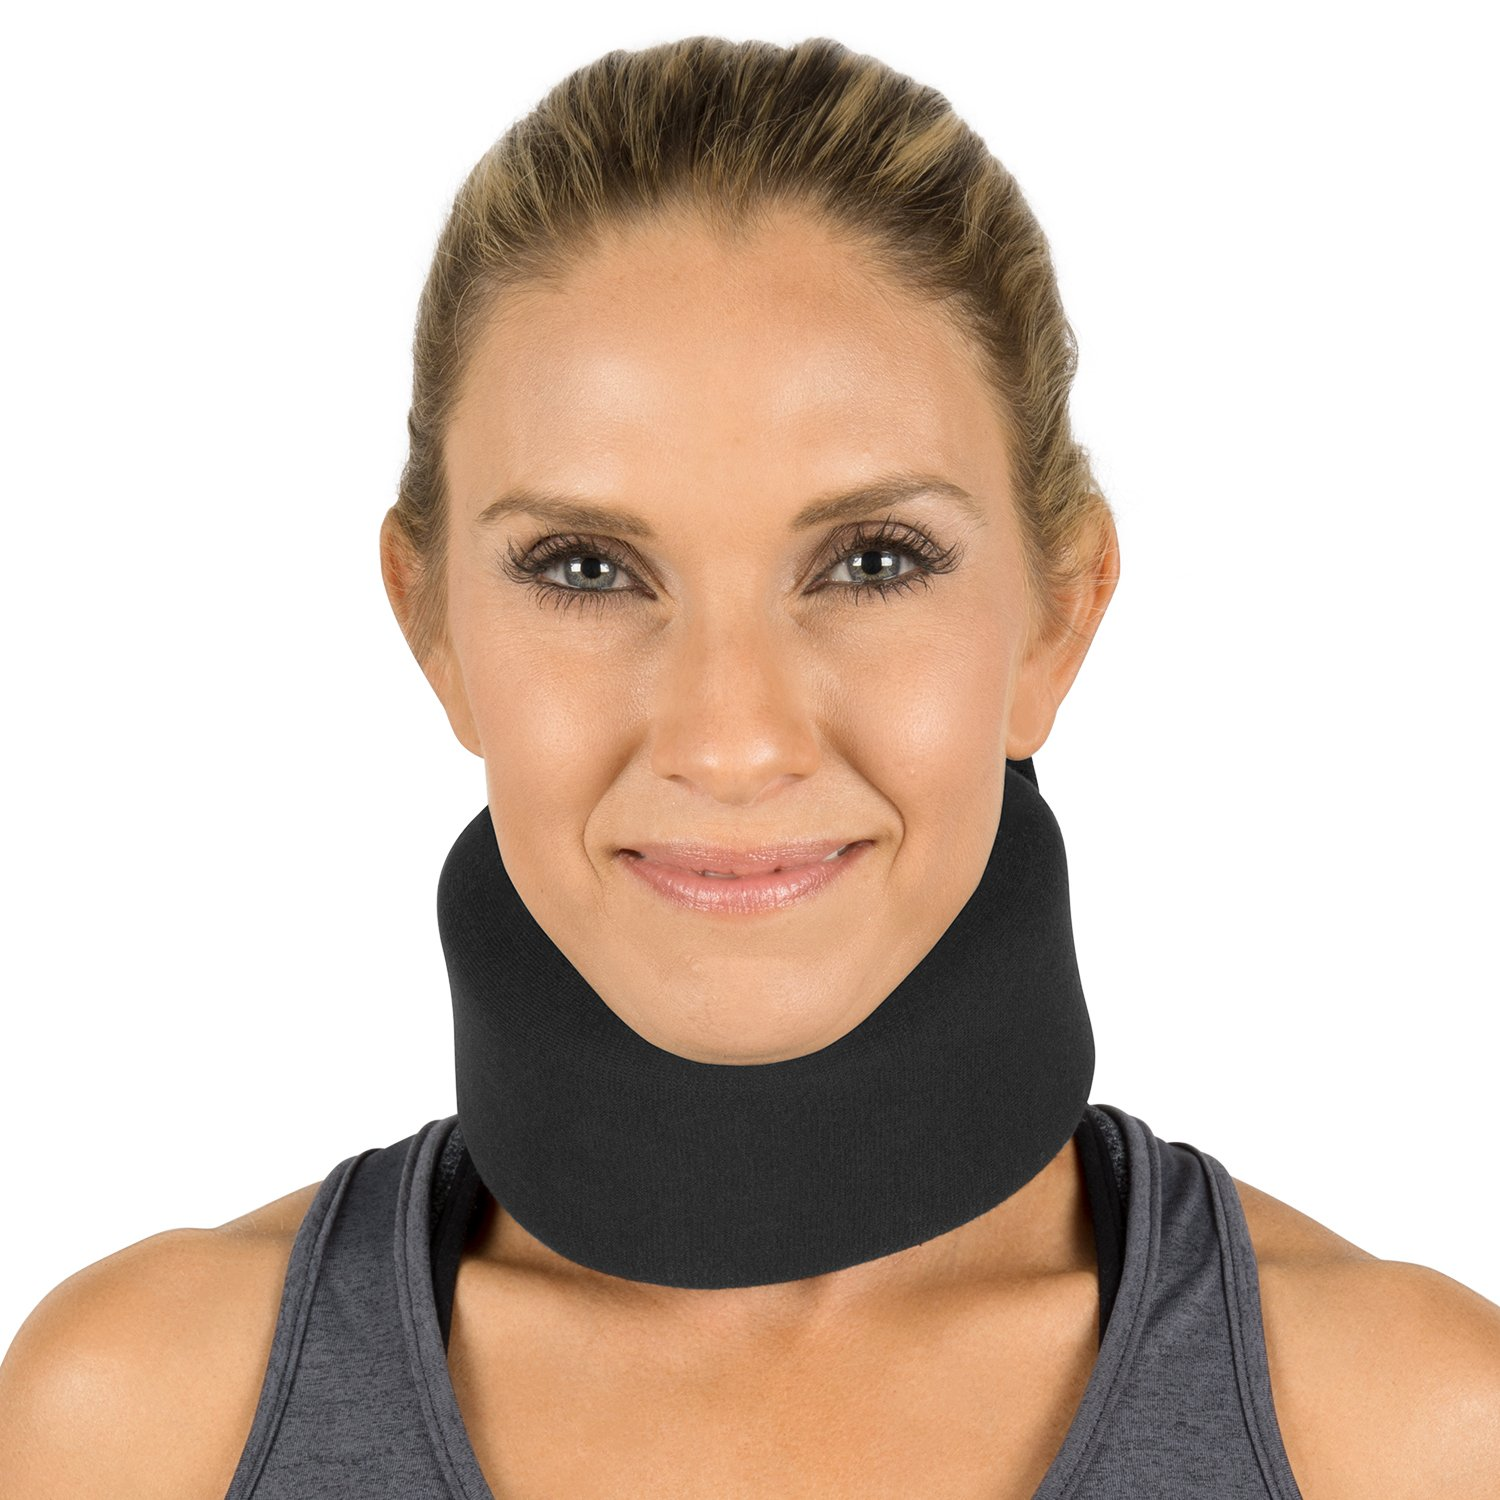 Neck Brace by Vive - Cervical Collar - Adjustable Soft Support Collar Can Be Used During Sleep - Wraps Aligns & Stabilizes Vertebrae - Relieves Pain & Pressure in Spine (Thin, Black)